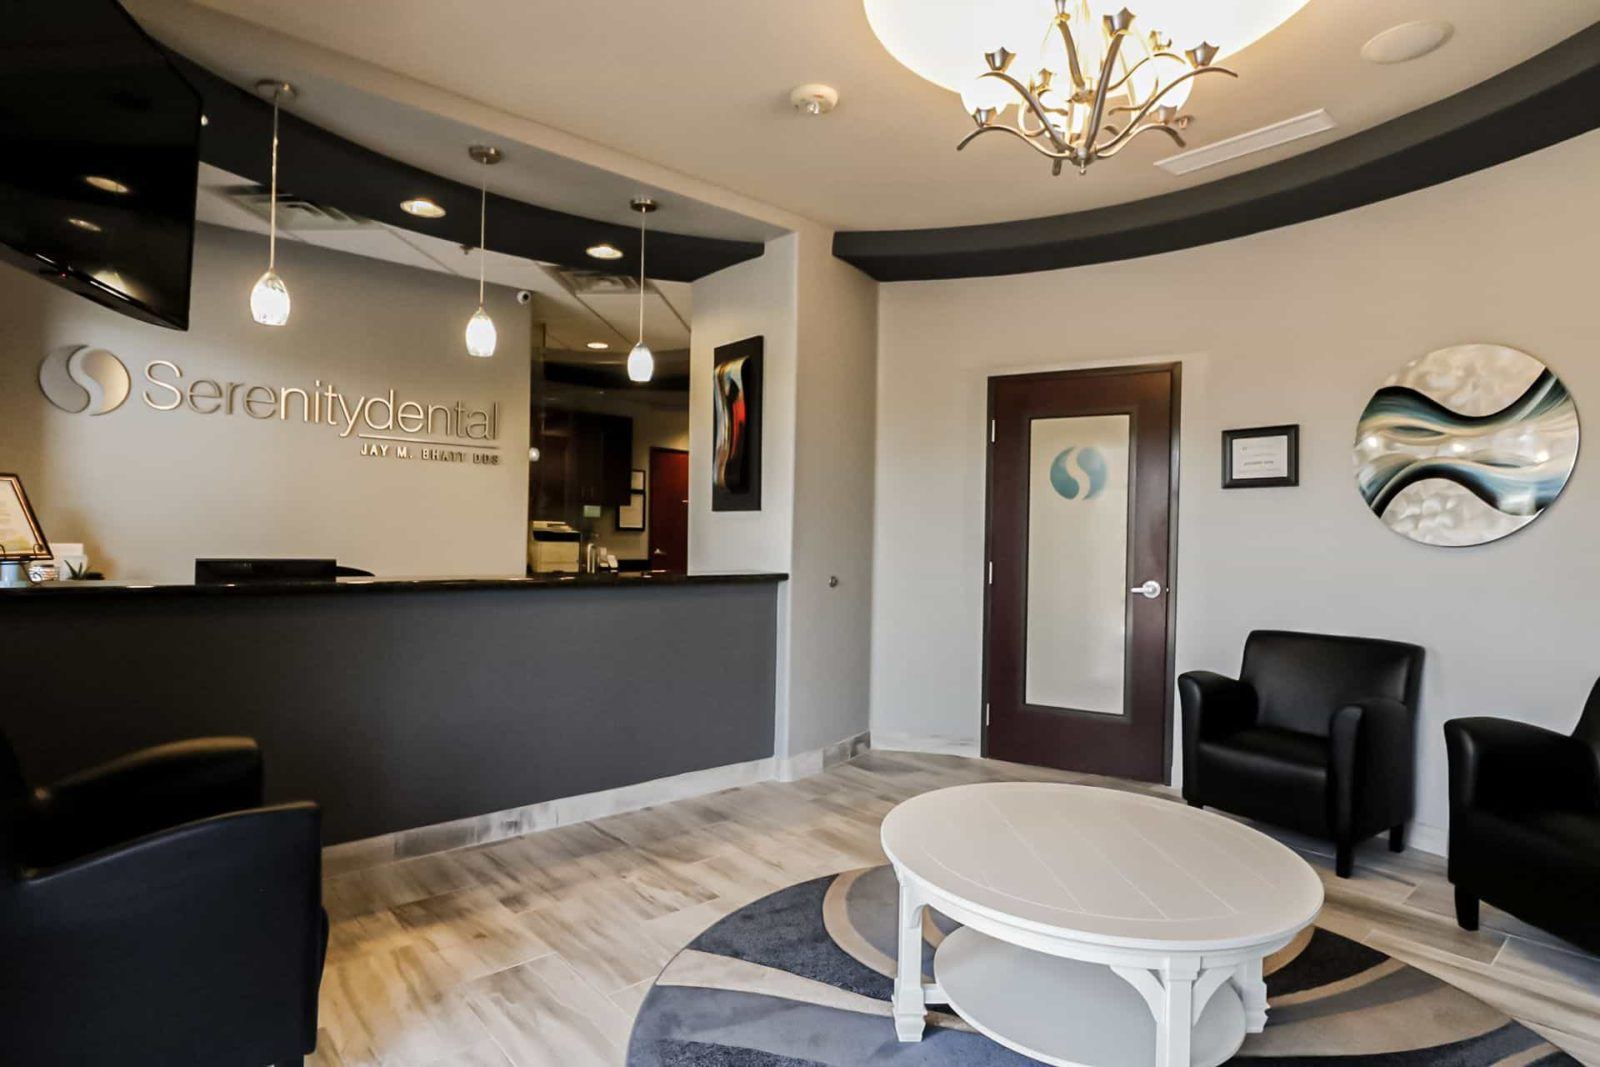 Serenity dental office picture